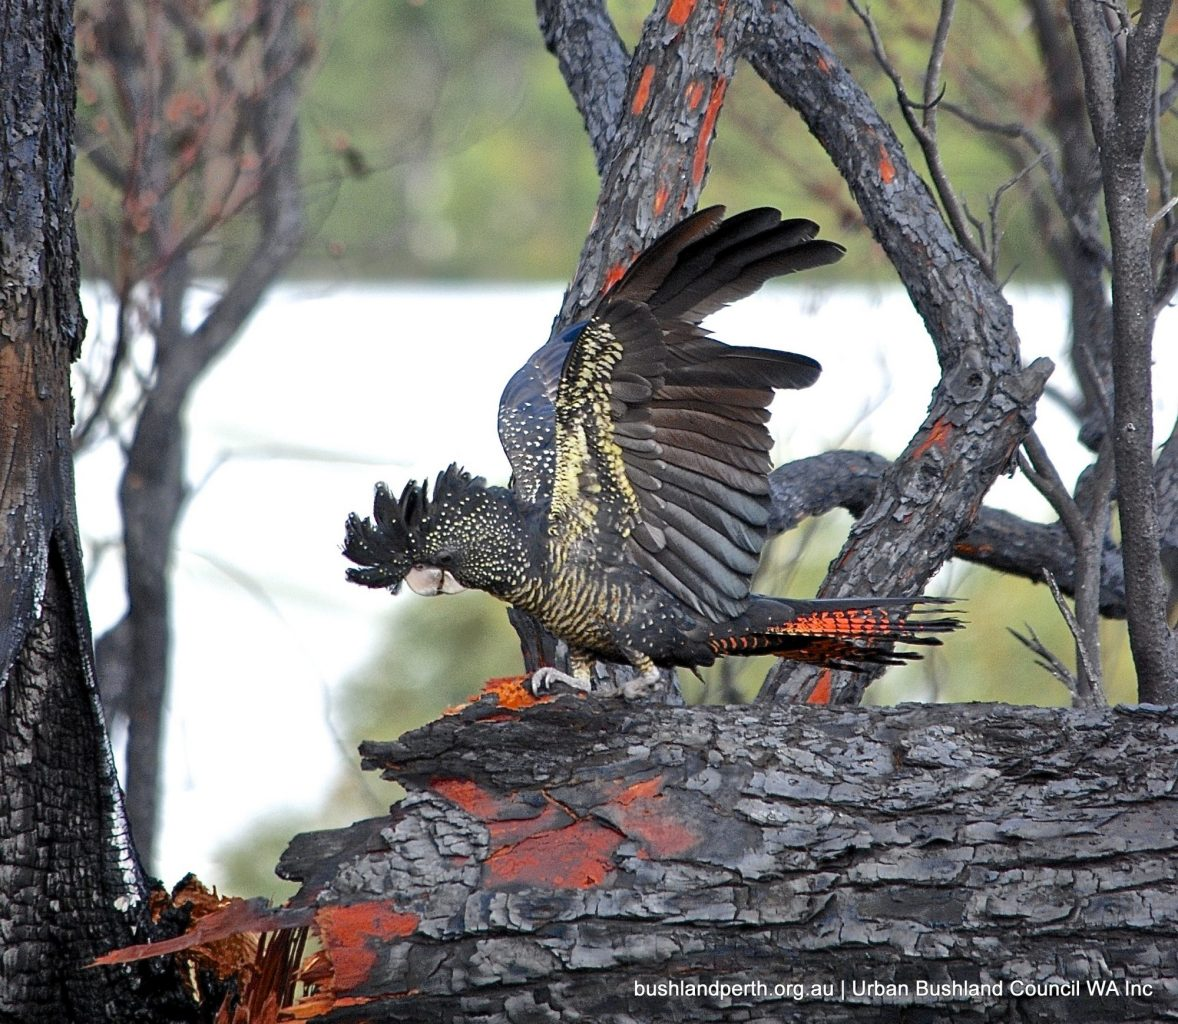 Red-tailed Black Cockatoo at Underwood Avenue Bushland.